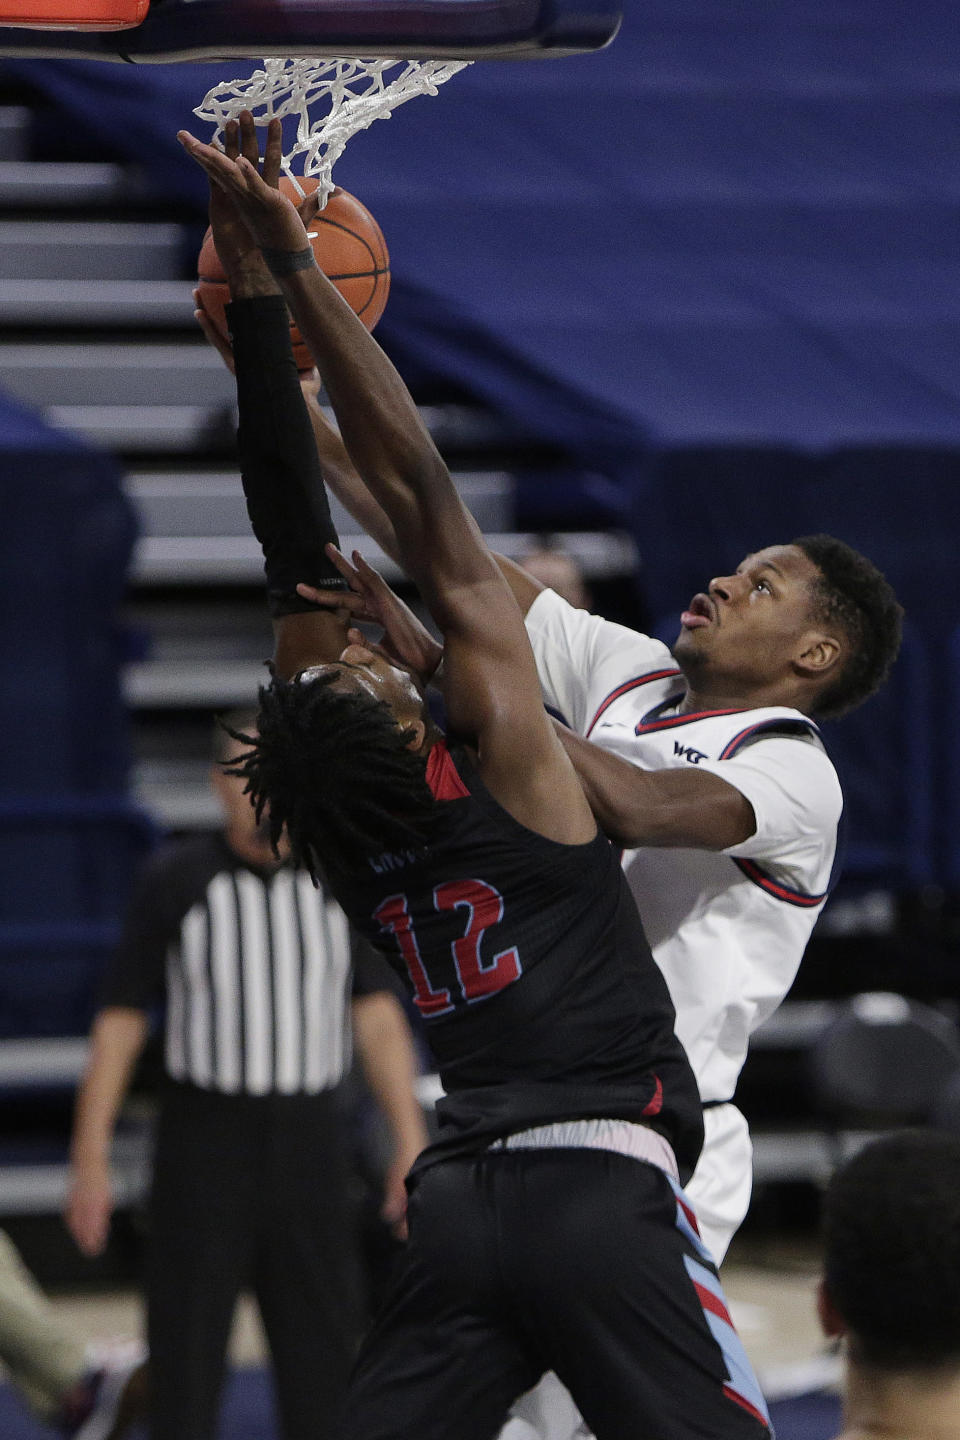 Gonzaga guard Joel Ayayi, right, shoots over Loyola Marymount guard Jalin Anderson during the second half of an NCAA college basketball game in Spokane, Wash., Saturday, Feb. 27, 2021. (AP Photo/Young Kwak)